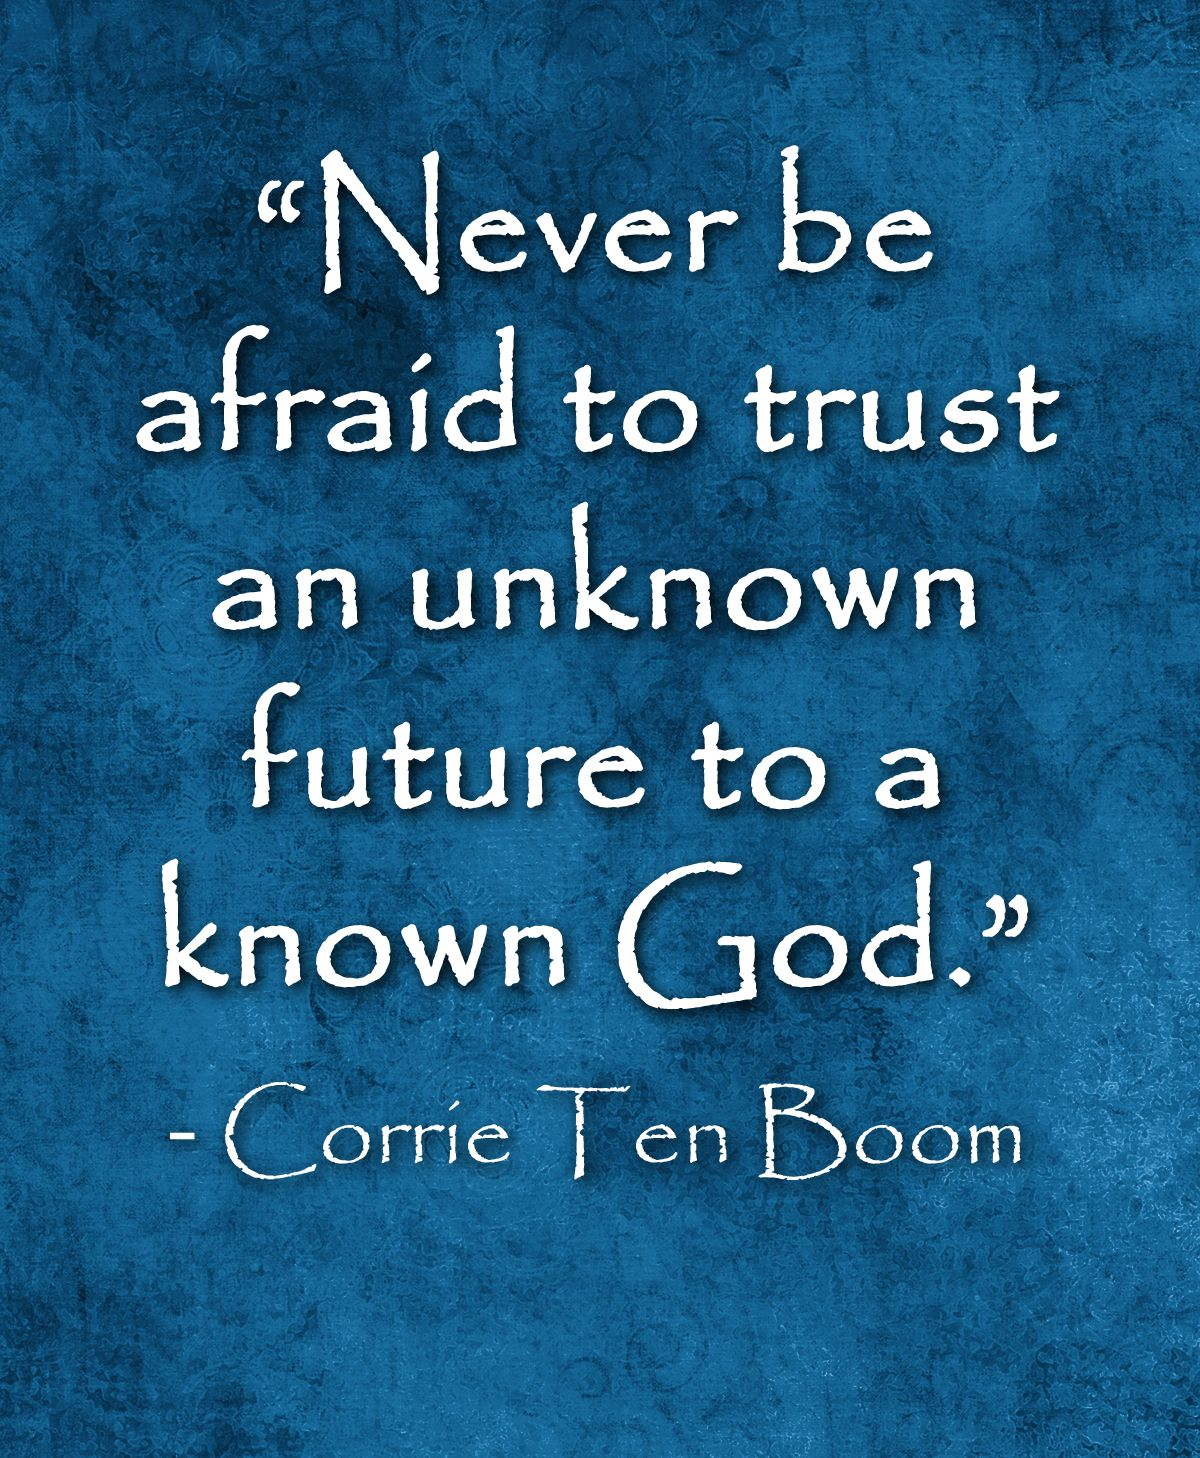 Corrie Ten Boom Quotes New Great #quotecorrie Ten Boom  Inspiration  Pinterest  Corrie